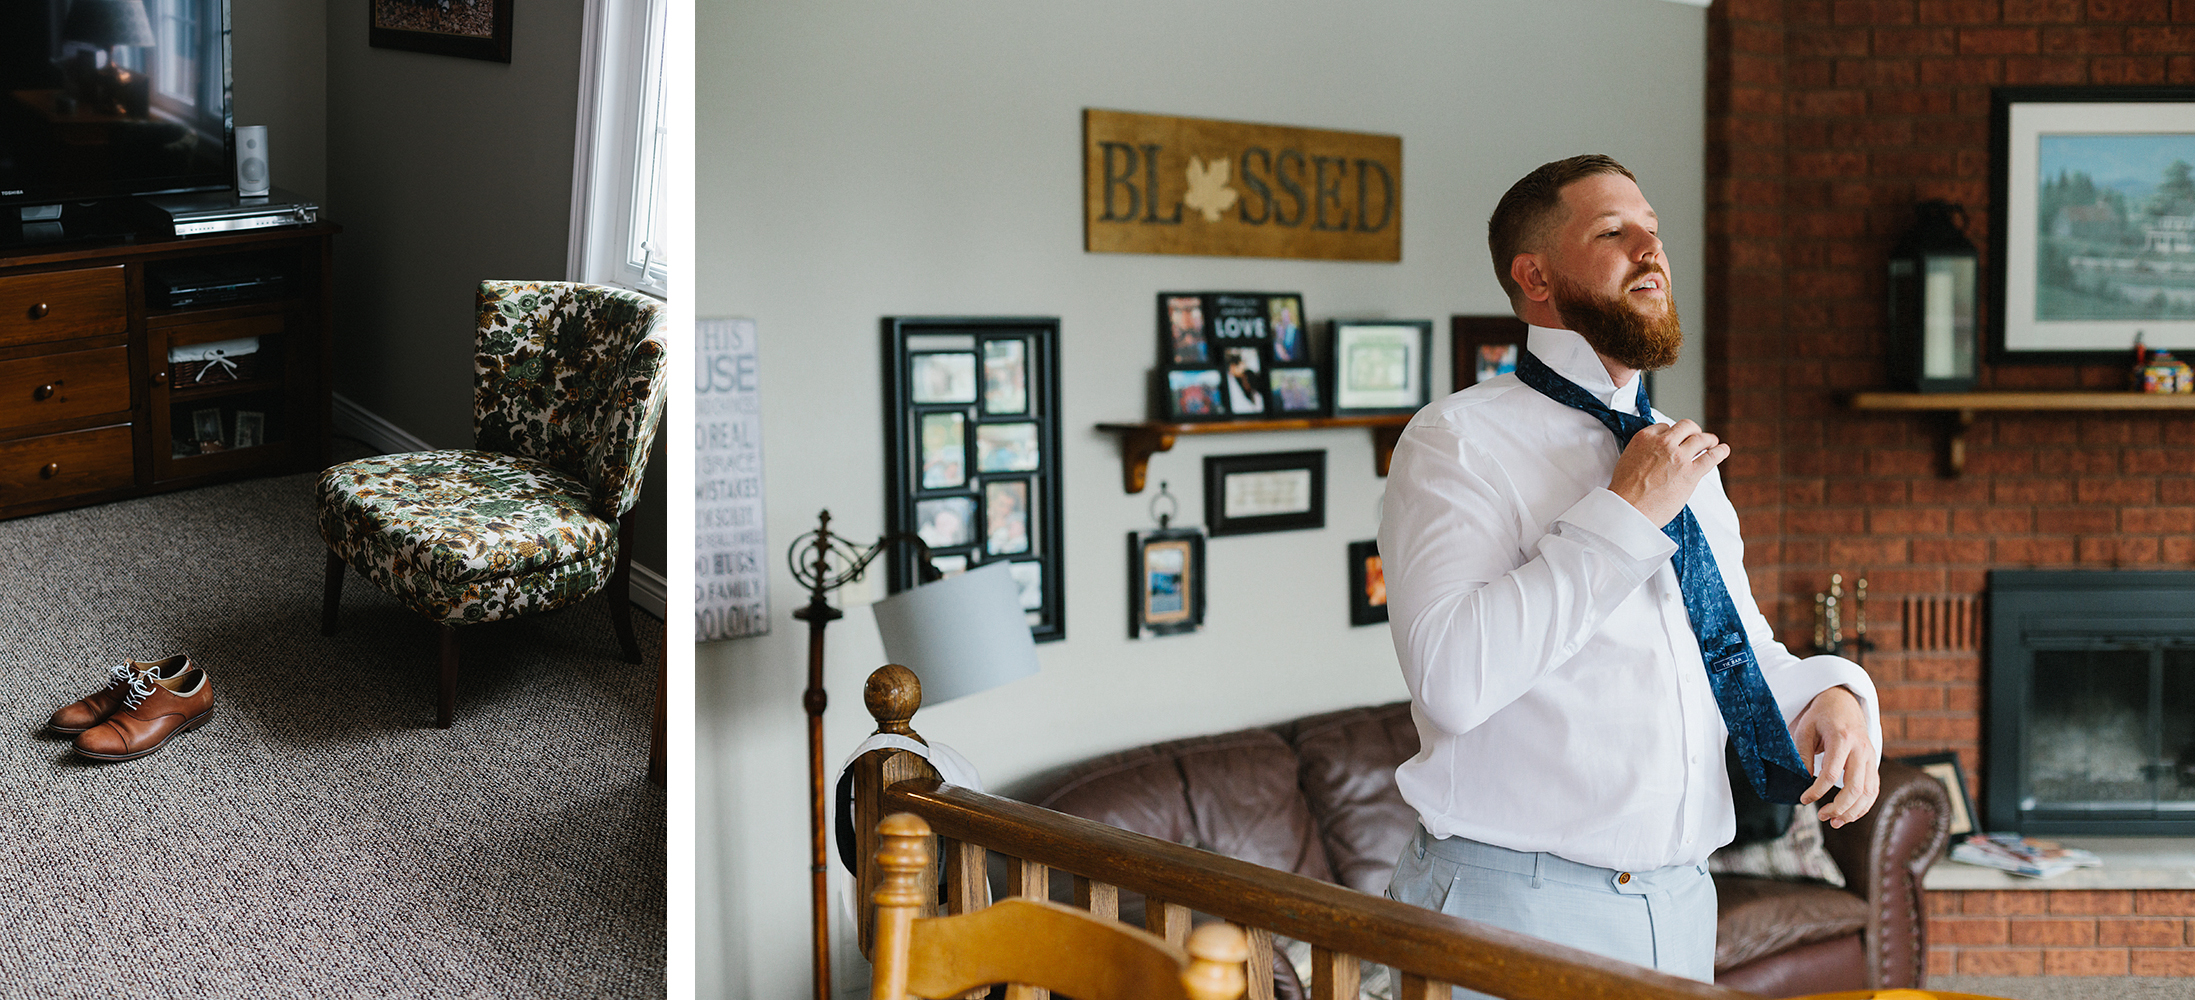 cambium-farms-wedding-toronto-wedding-photographer-ryanne-hollies-photography-gay-wedding-farm-wedding-inspiriration-bride-getting-ready-makeup-artist.jpg